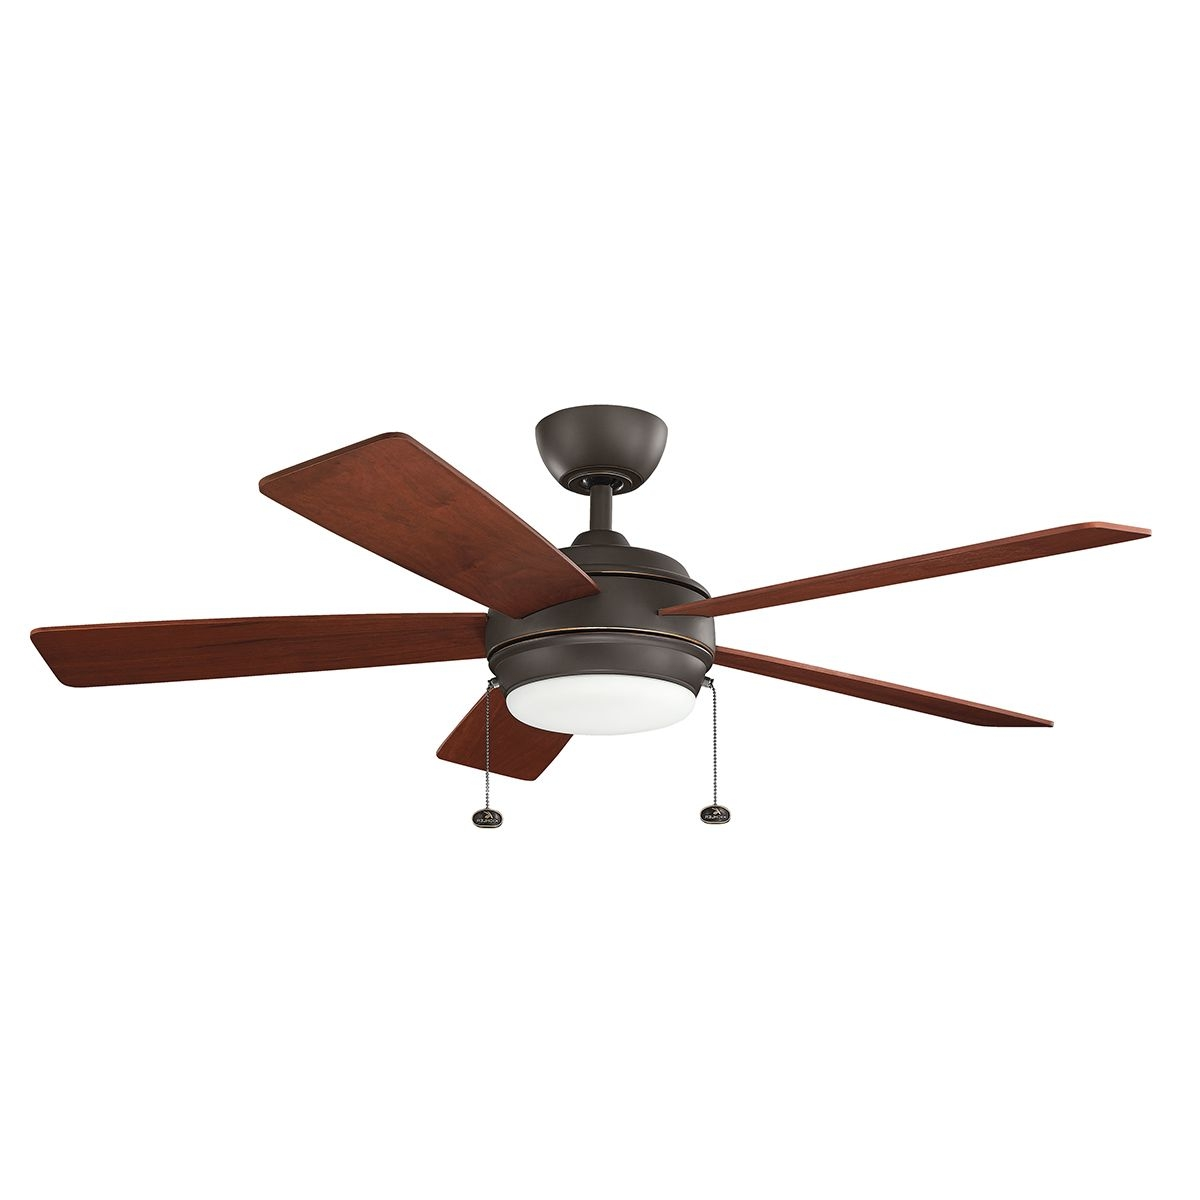 Kmart Outdoor Ceiling Fans Within Most Recently Released Hugger 52 In Black Ceiling Fan Awesome Modern White Ceiling Fans (Gallery 7 of 20)